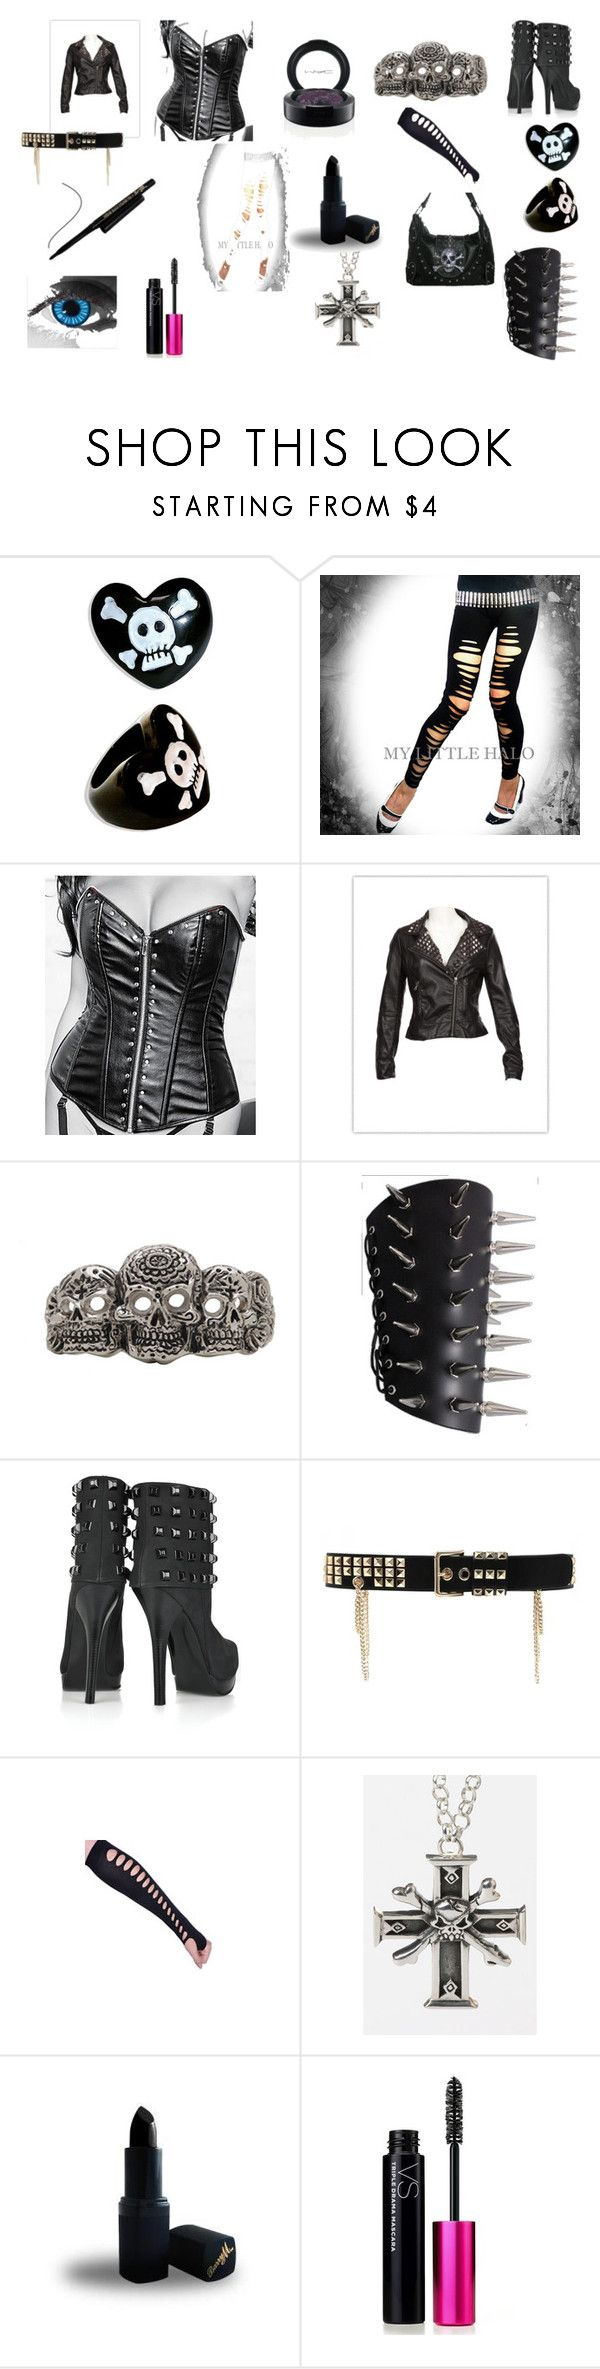 """hottzz"" by botdf ❤ liked on Polyvore featuring Thomas Wylde, Temperley London, Femme Metale Jewelry, Barry M, Victoria's Secret, MAC Cosmetics and Vision"